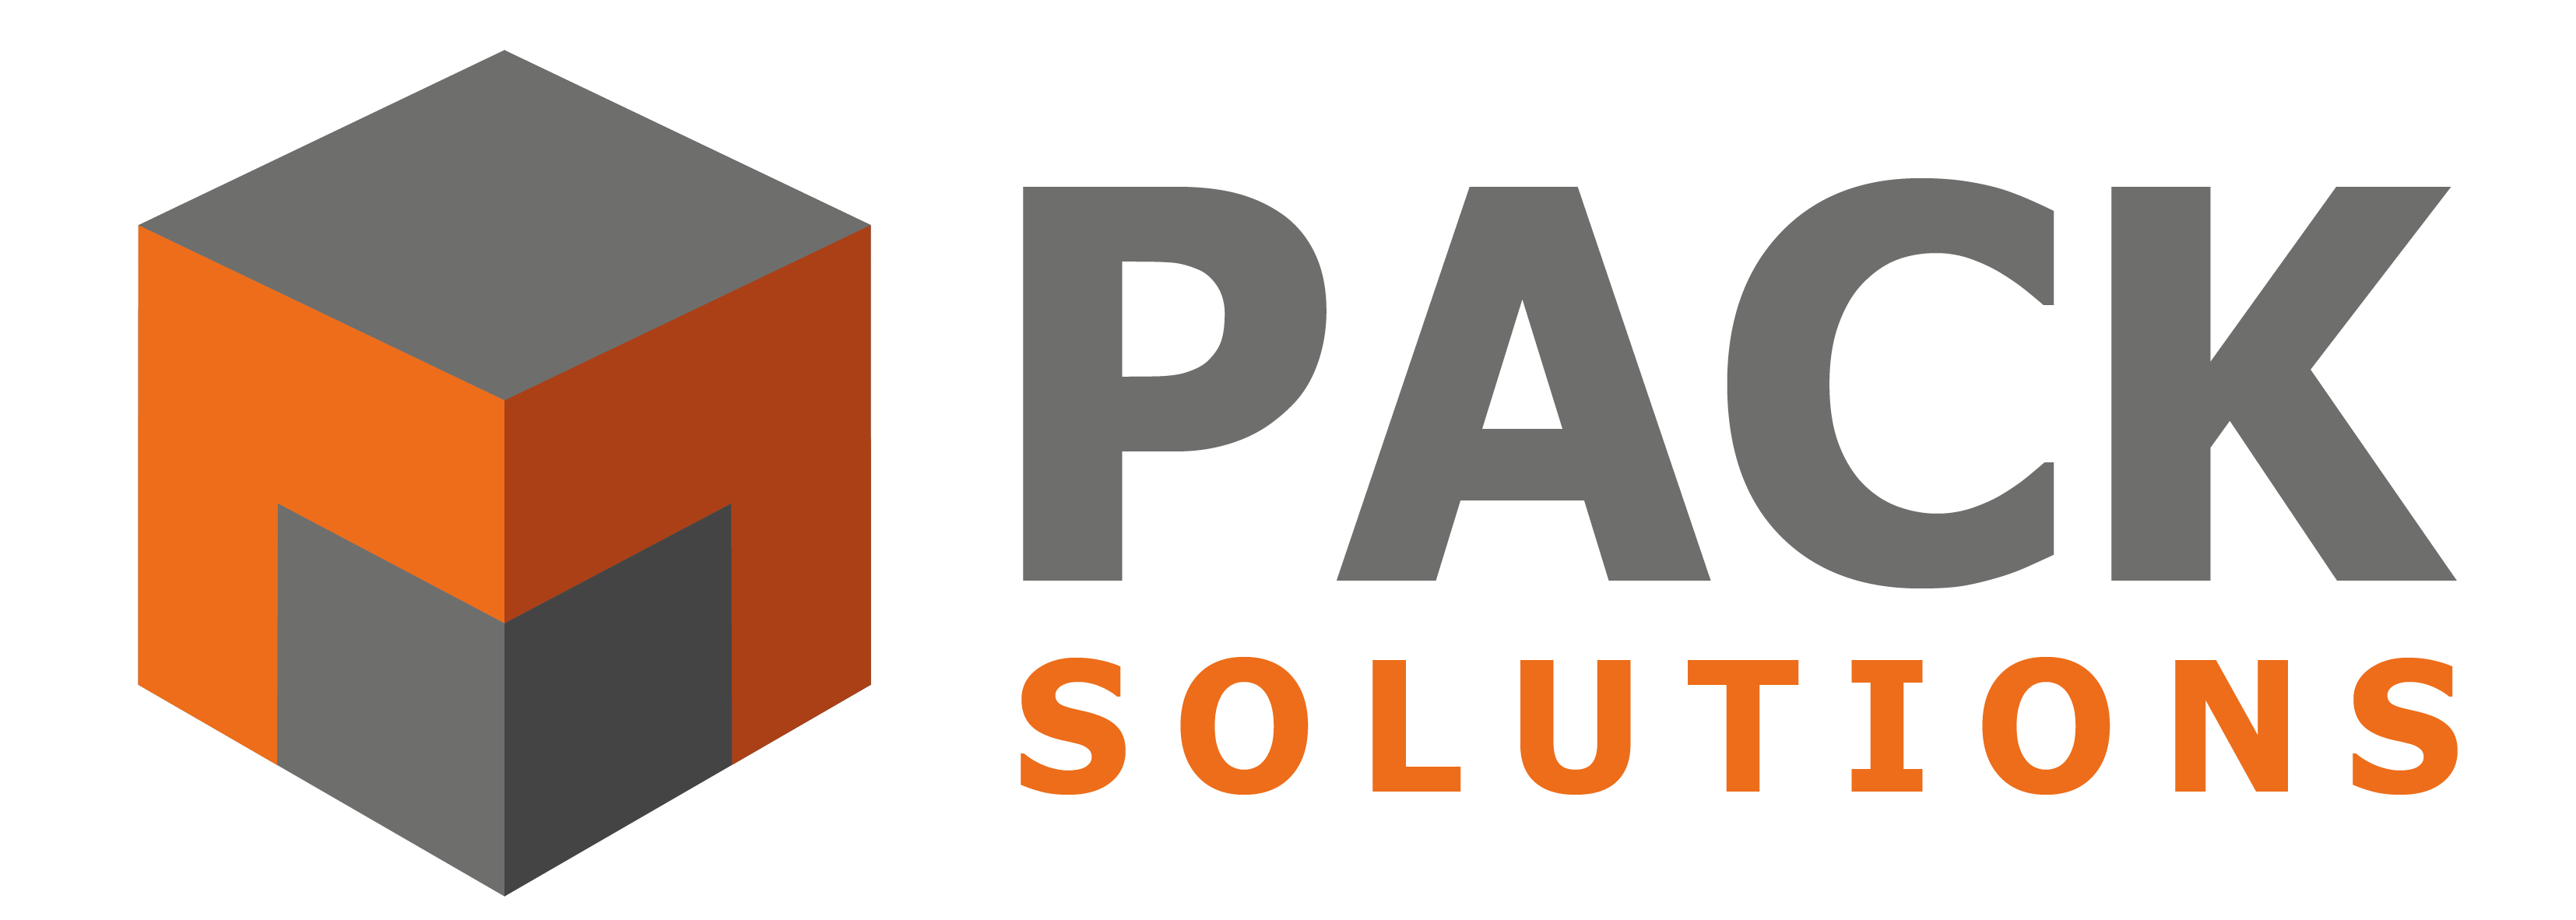 MPack Solutions